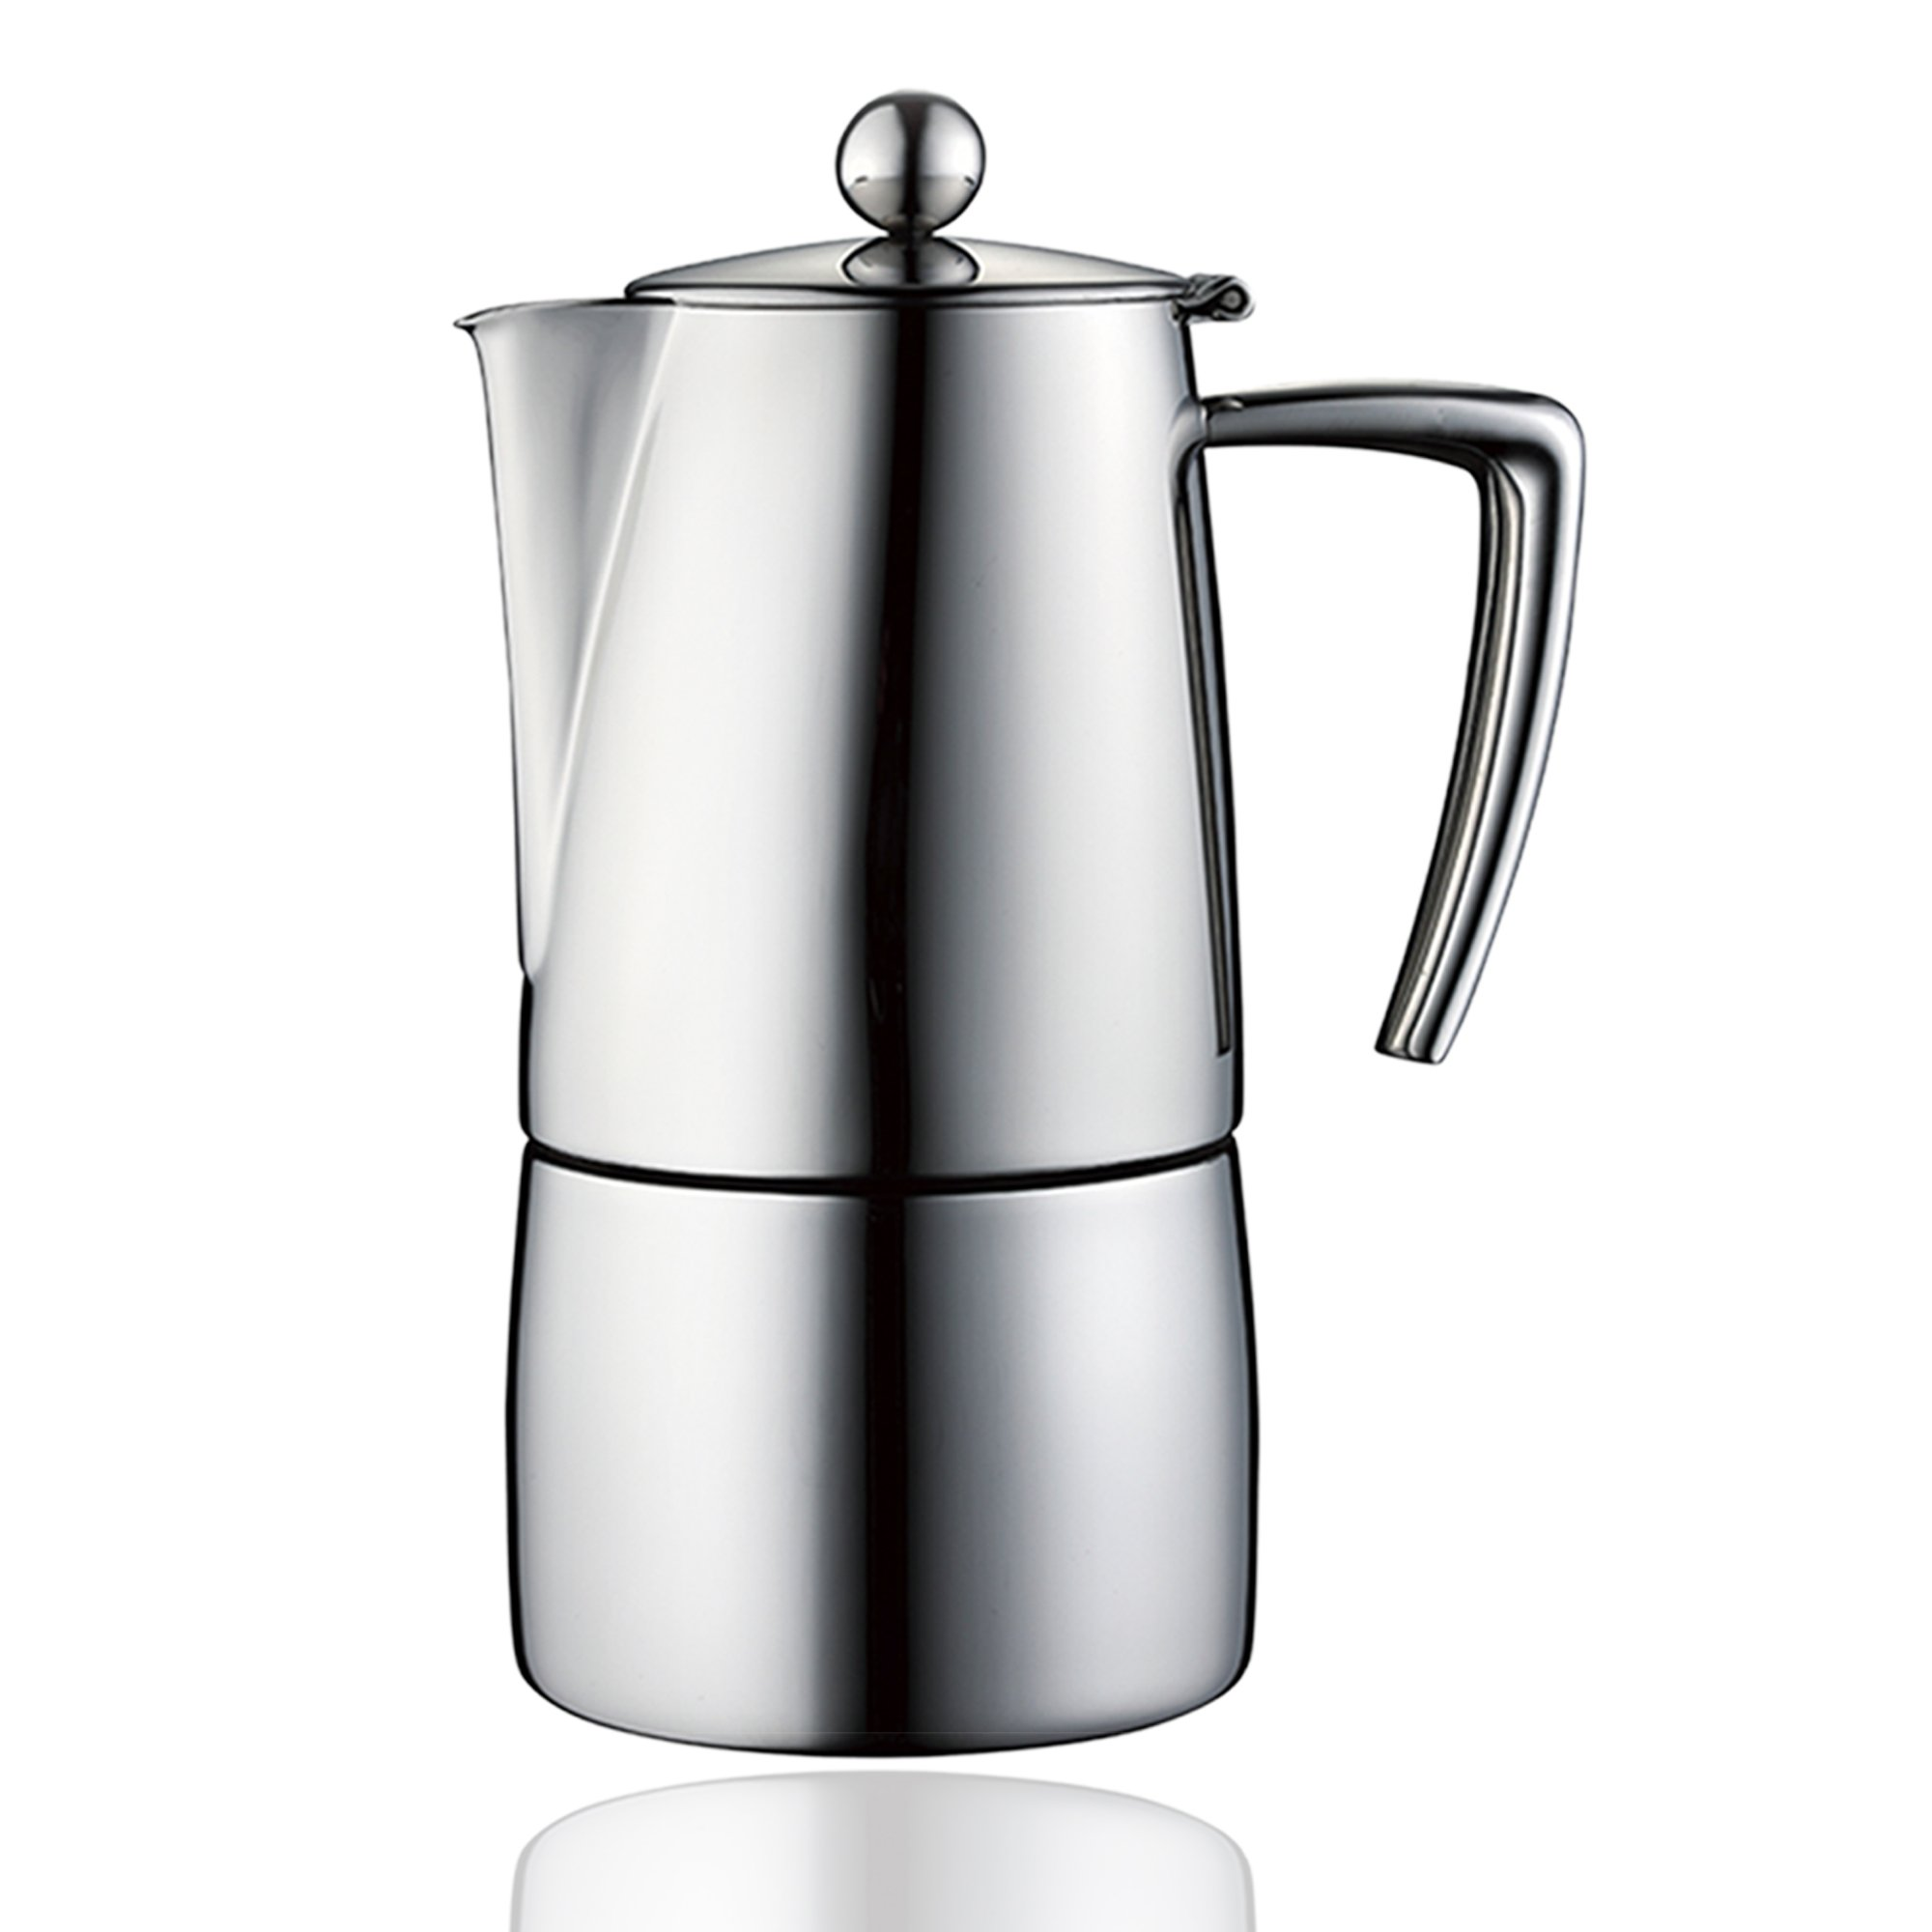 Minos Moka Pot 6-Cup Espresso Maker - Stainless Steel And Heatproof Handle - Classy and Elegant Design - Suitable for Gas, Electric And Ceramic Stovetops